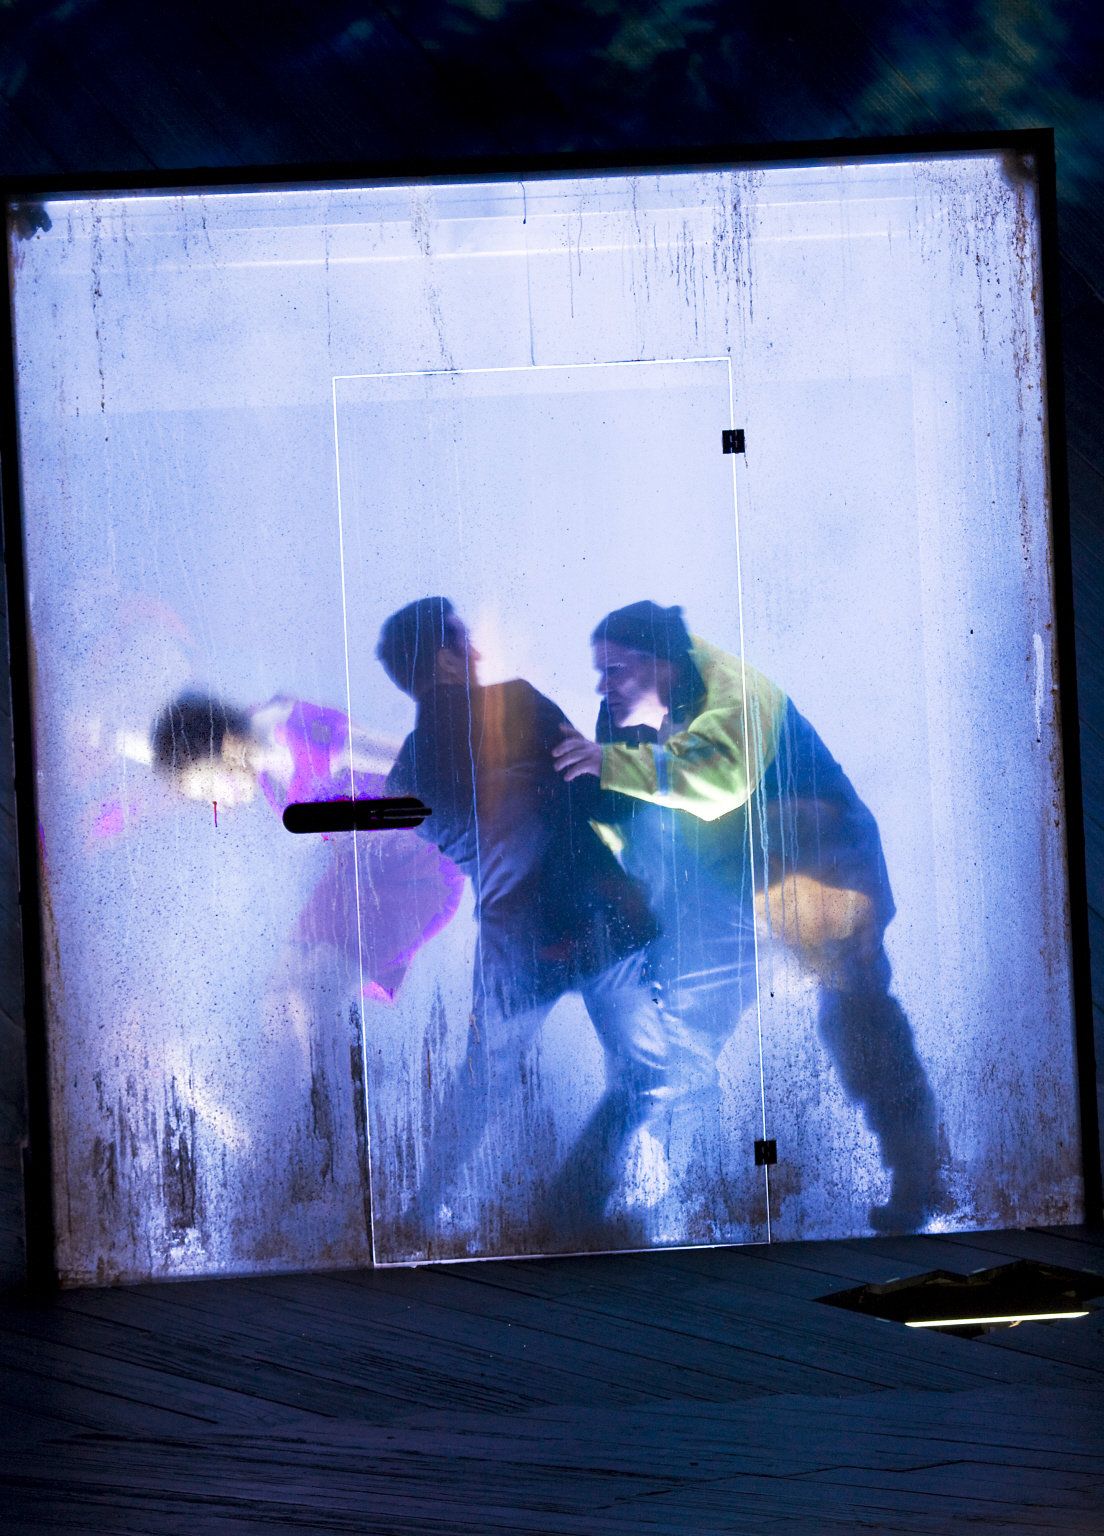 Three people in a see-through box, representing the boat in the storm.